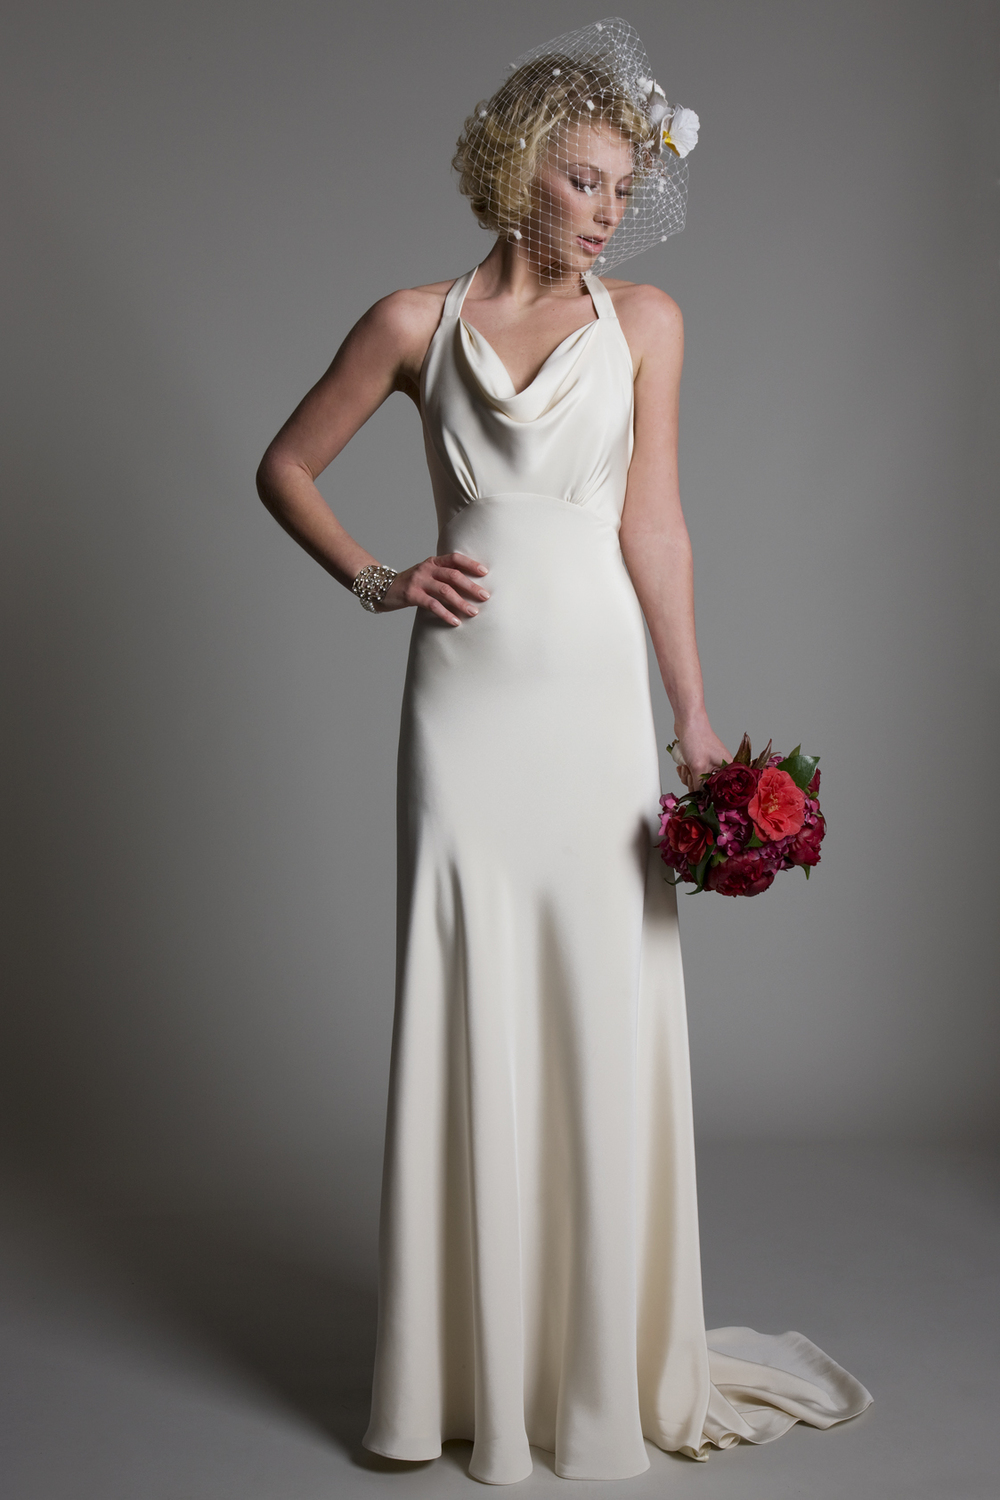 Lucy cowl neck low open back A line crepe back satin bridal wedding dress by Halfpenny London